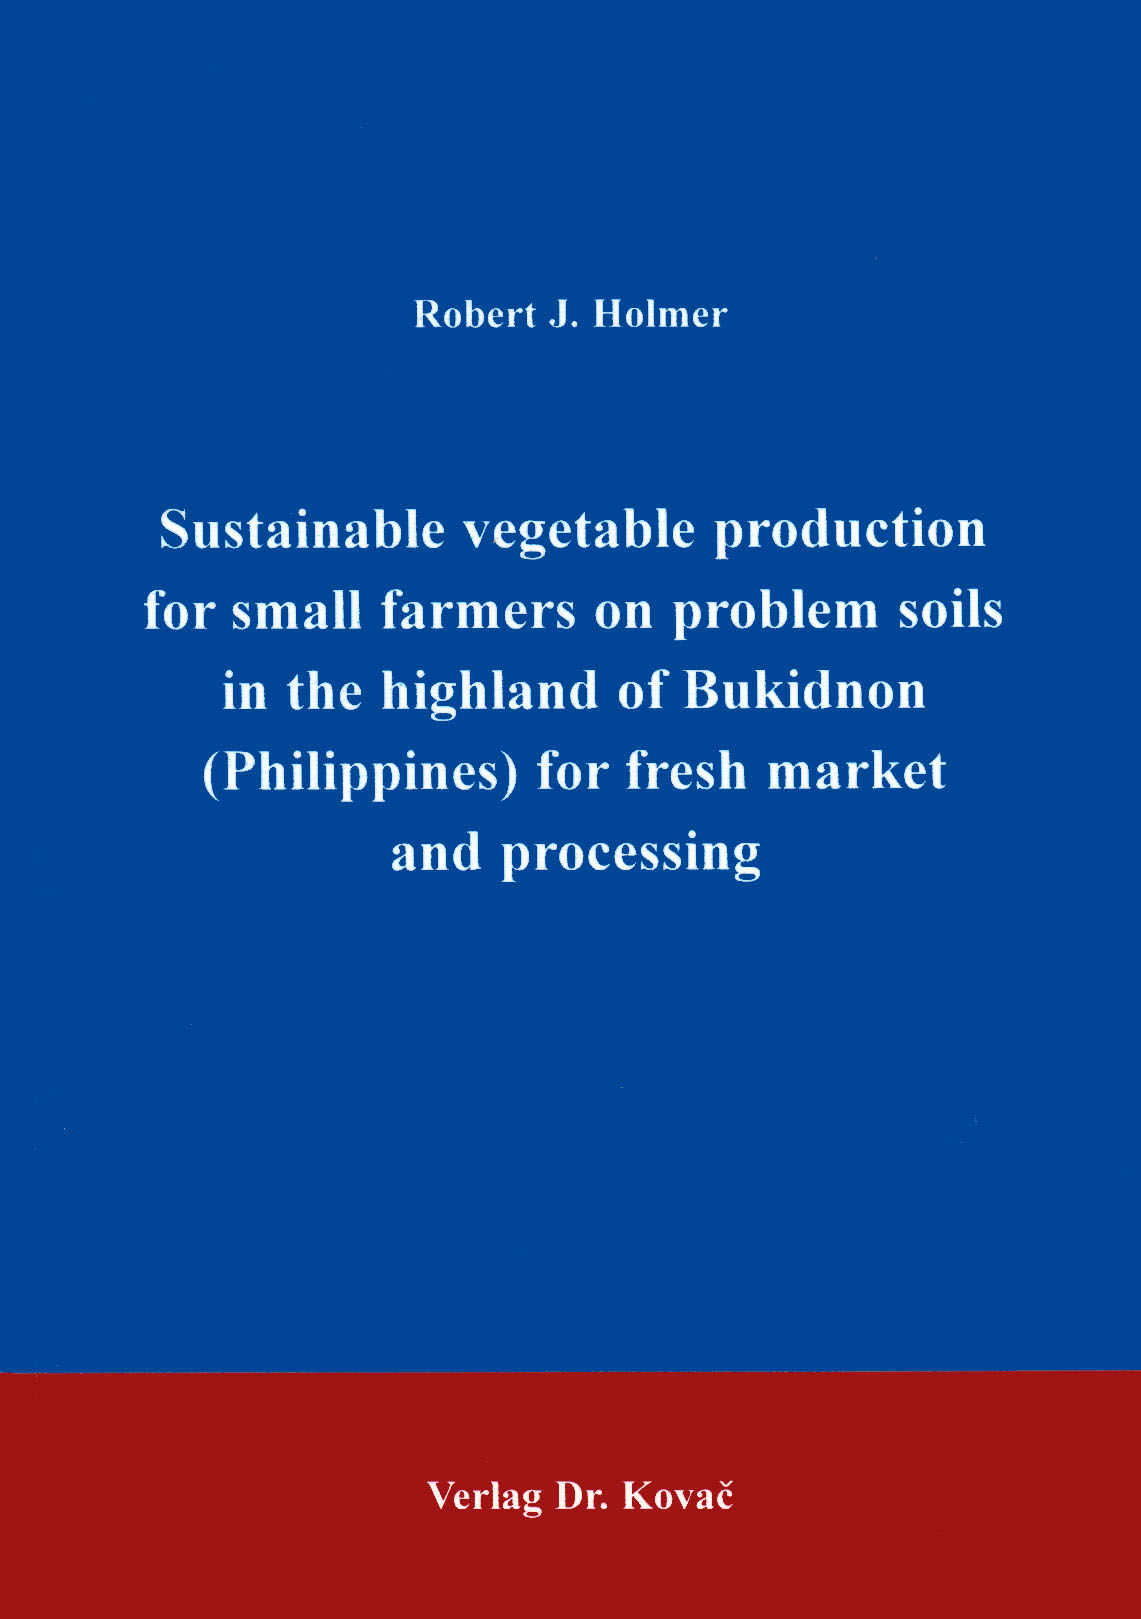 Cover: Sustainable vegetable production for small farmers on problem soils in the highland of Bukidnon (Philippines) for fresh market and processing